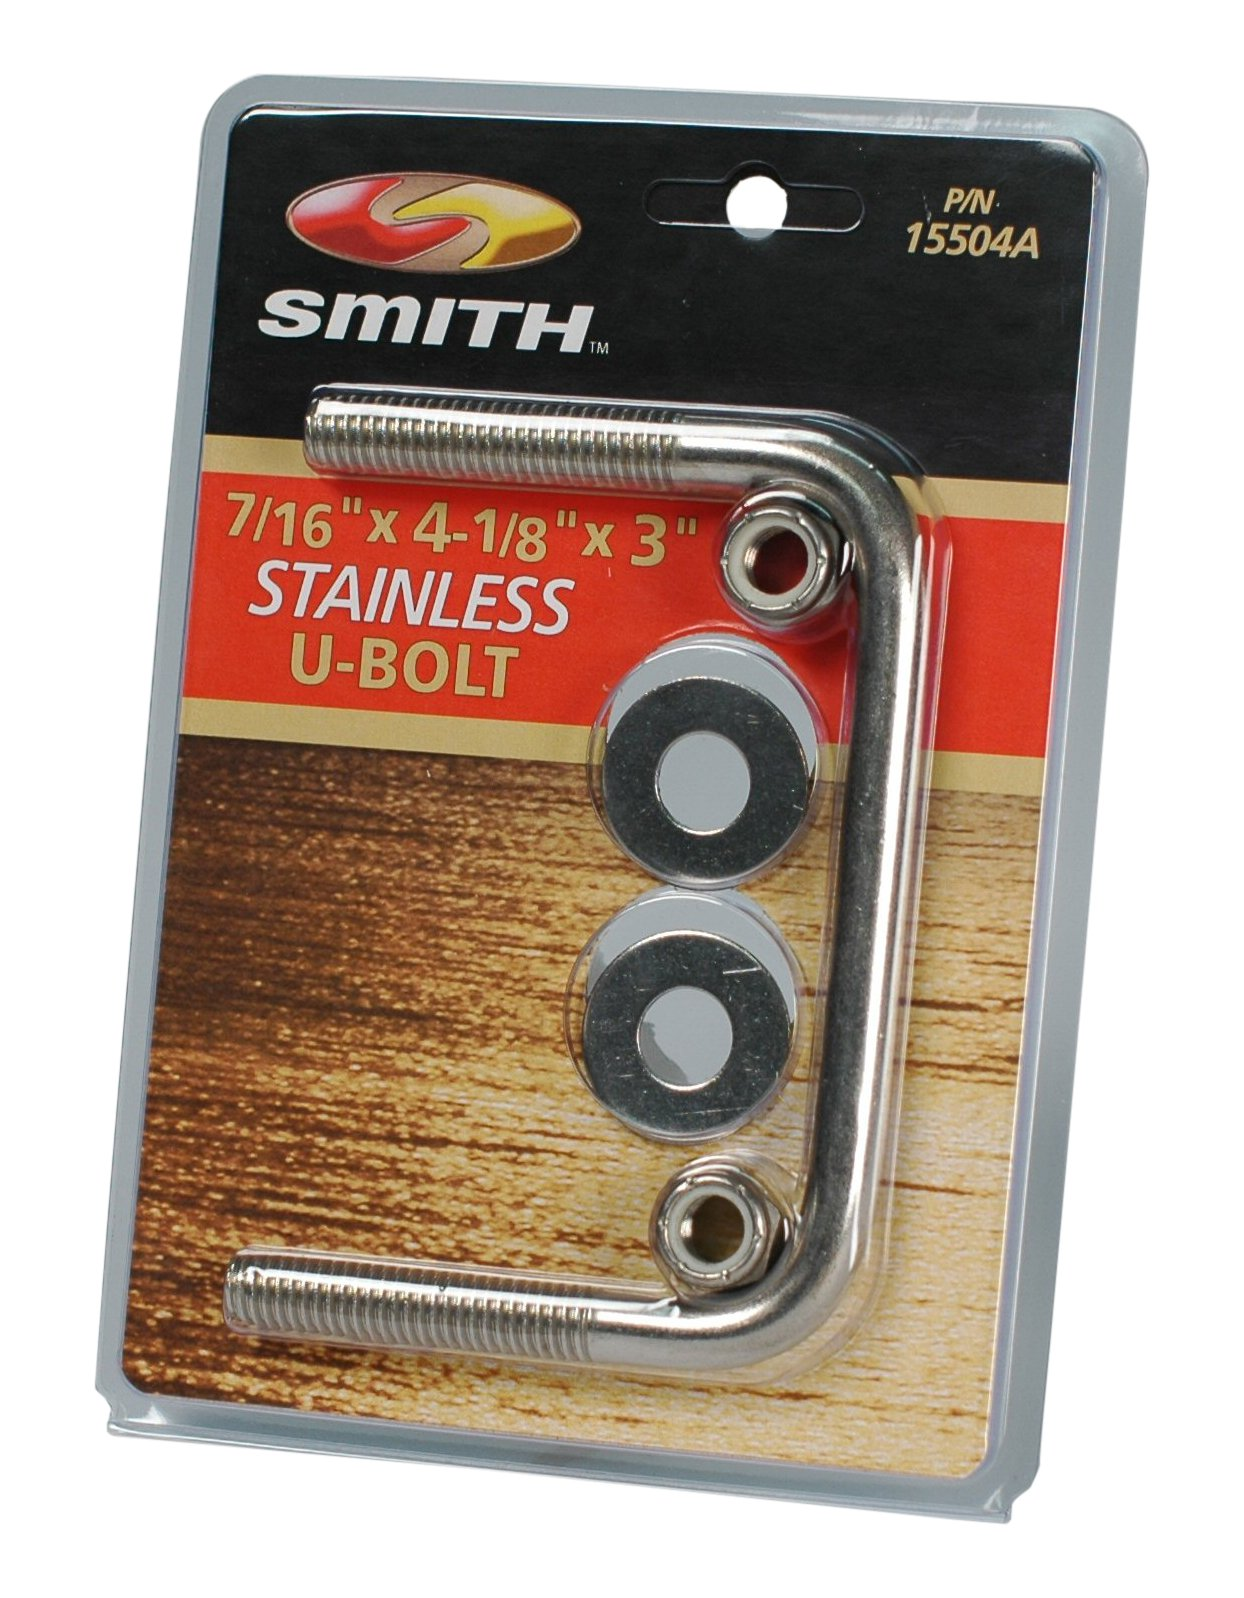 CE Smith Trailer 15502A Square U-Bolt with Washers & Nuts, 7/16'' x 4-1/8'' x 3''- Replacement Parts and Accessories for Your Ski Boat, Fishing Boat or Sailboat Trailer